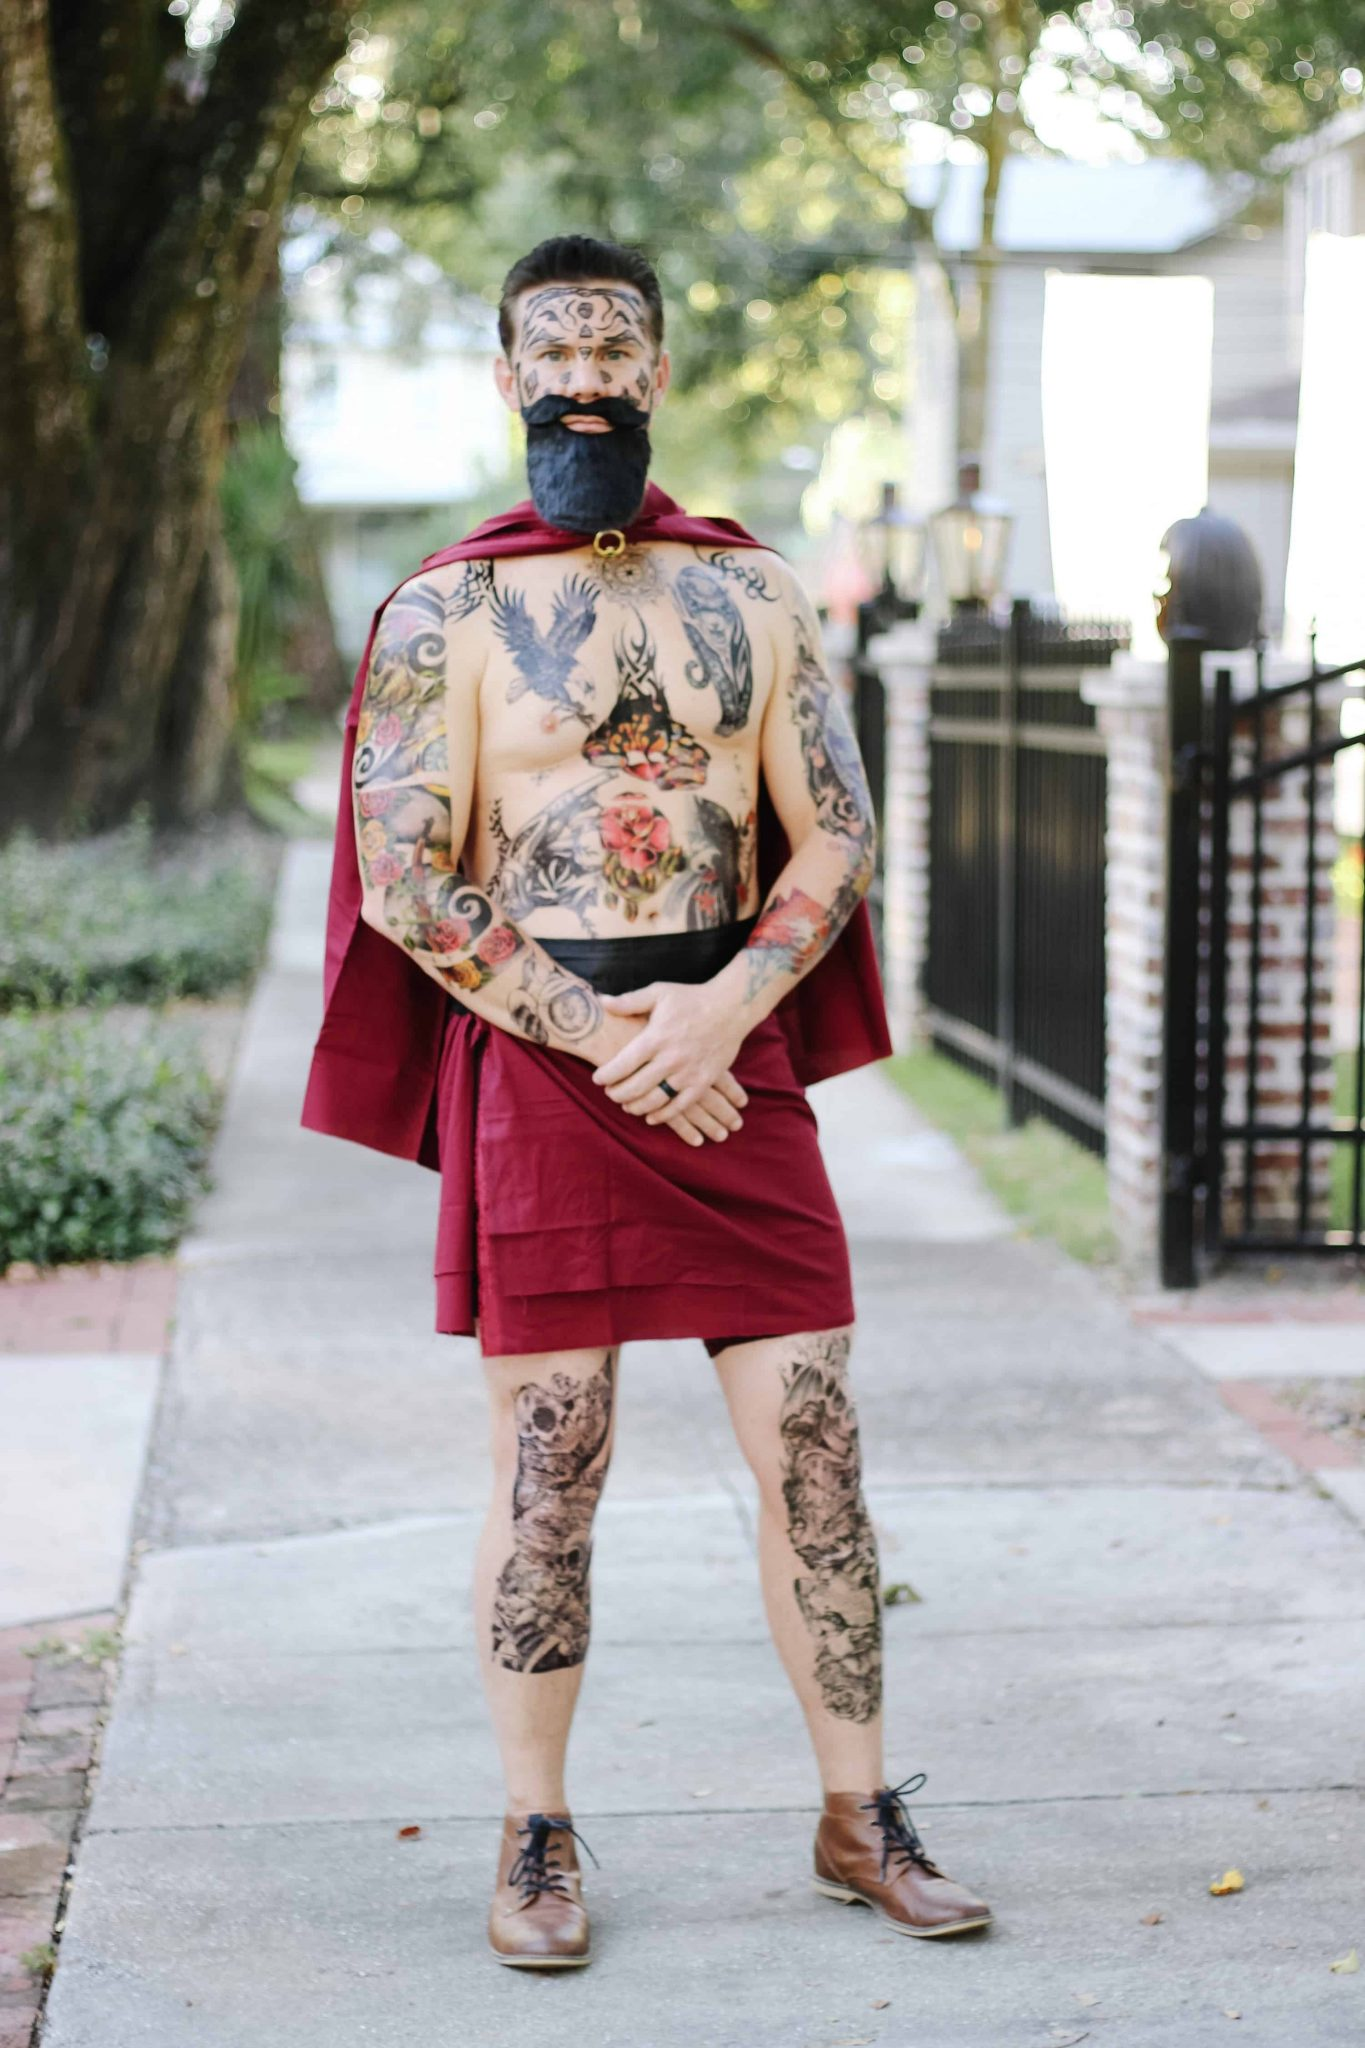 Greatest Showman Halloween Costumes - tattoo man